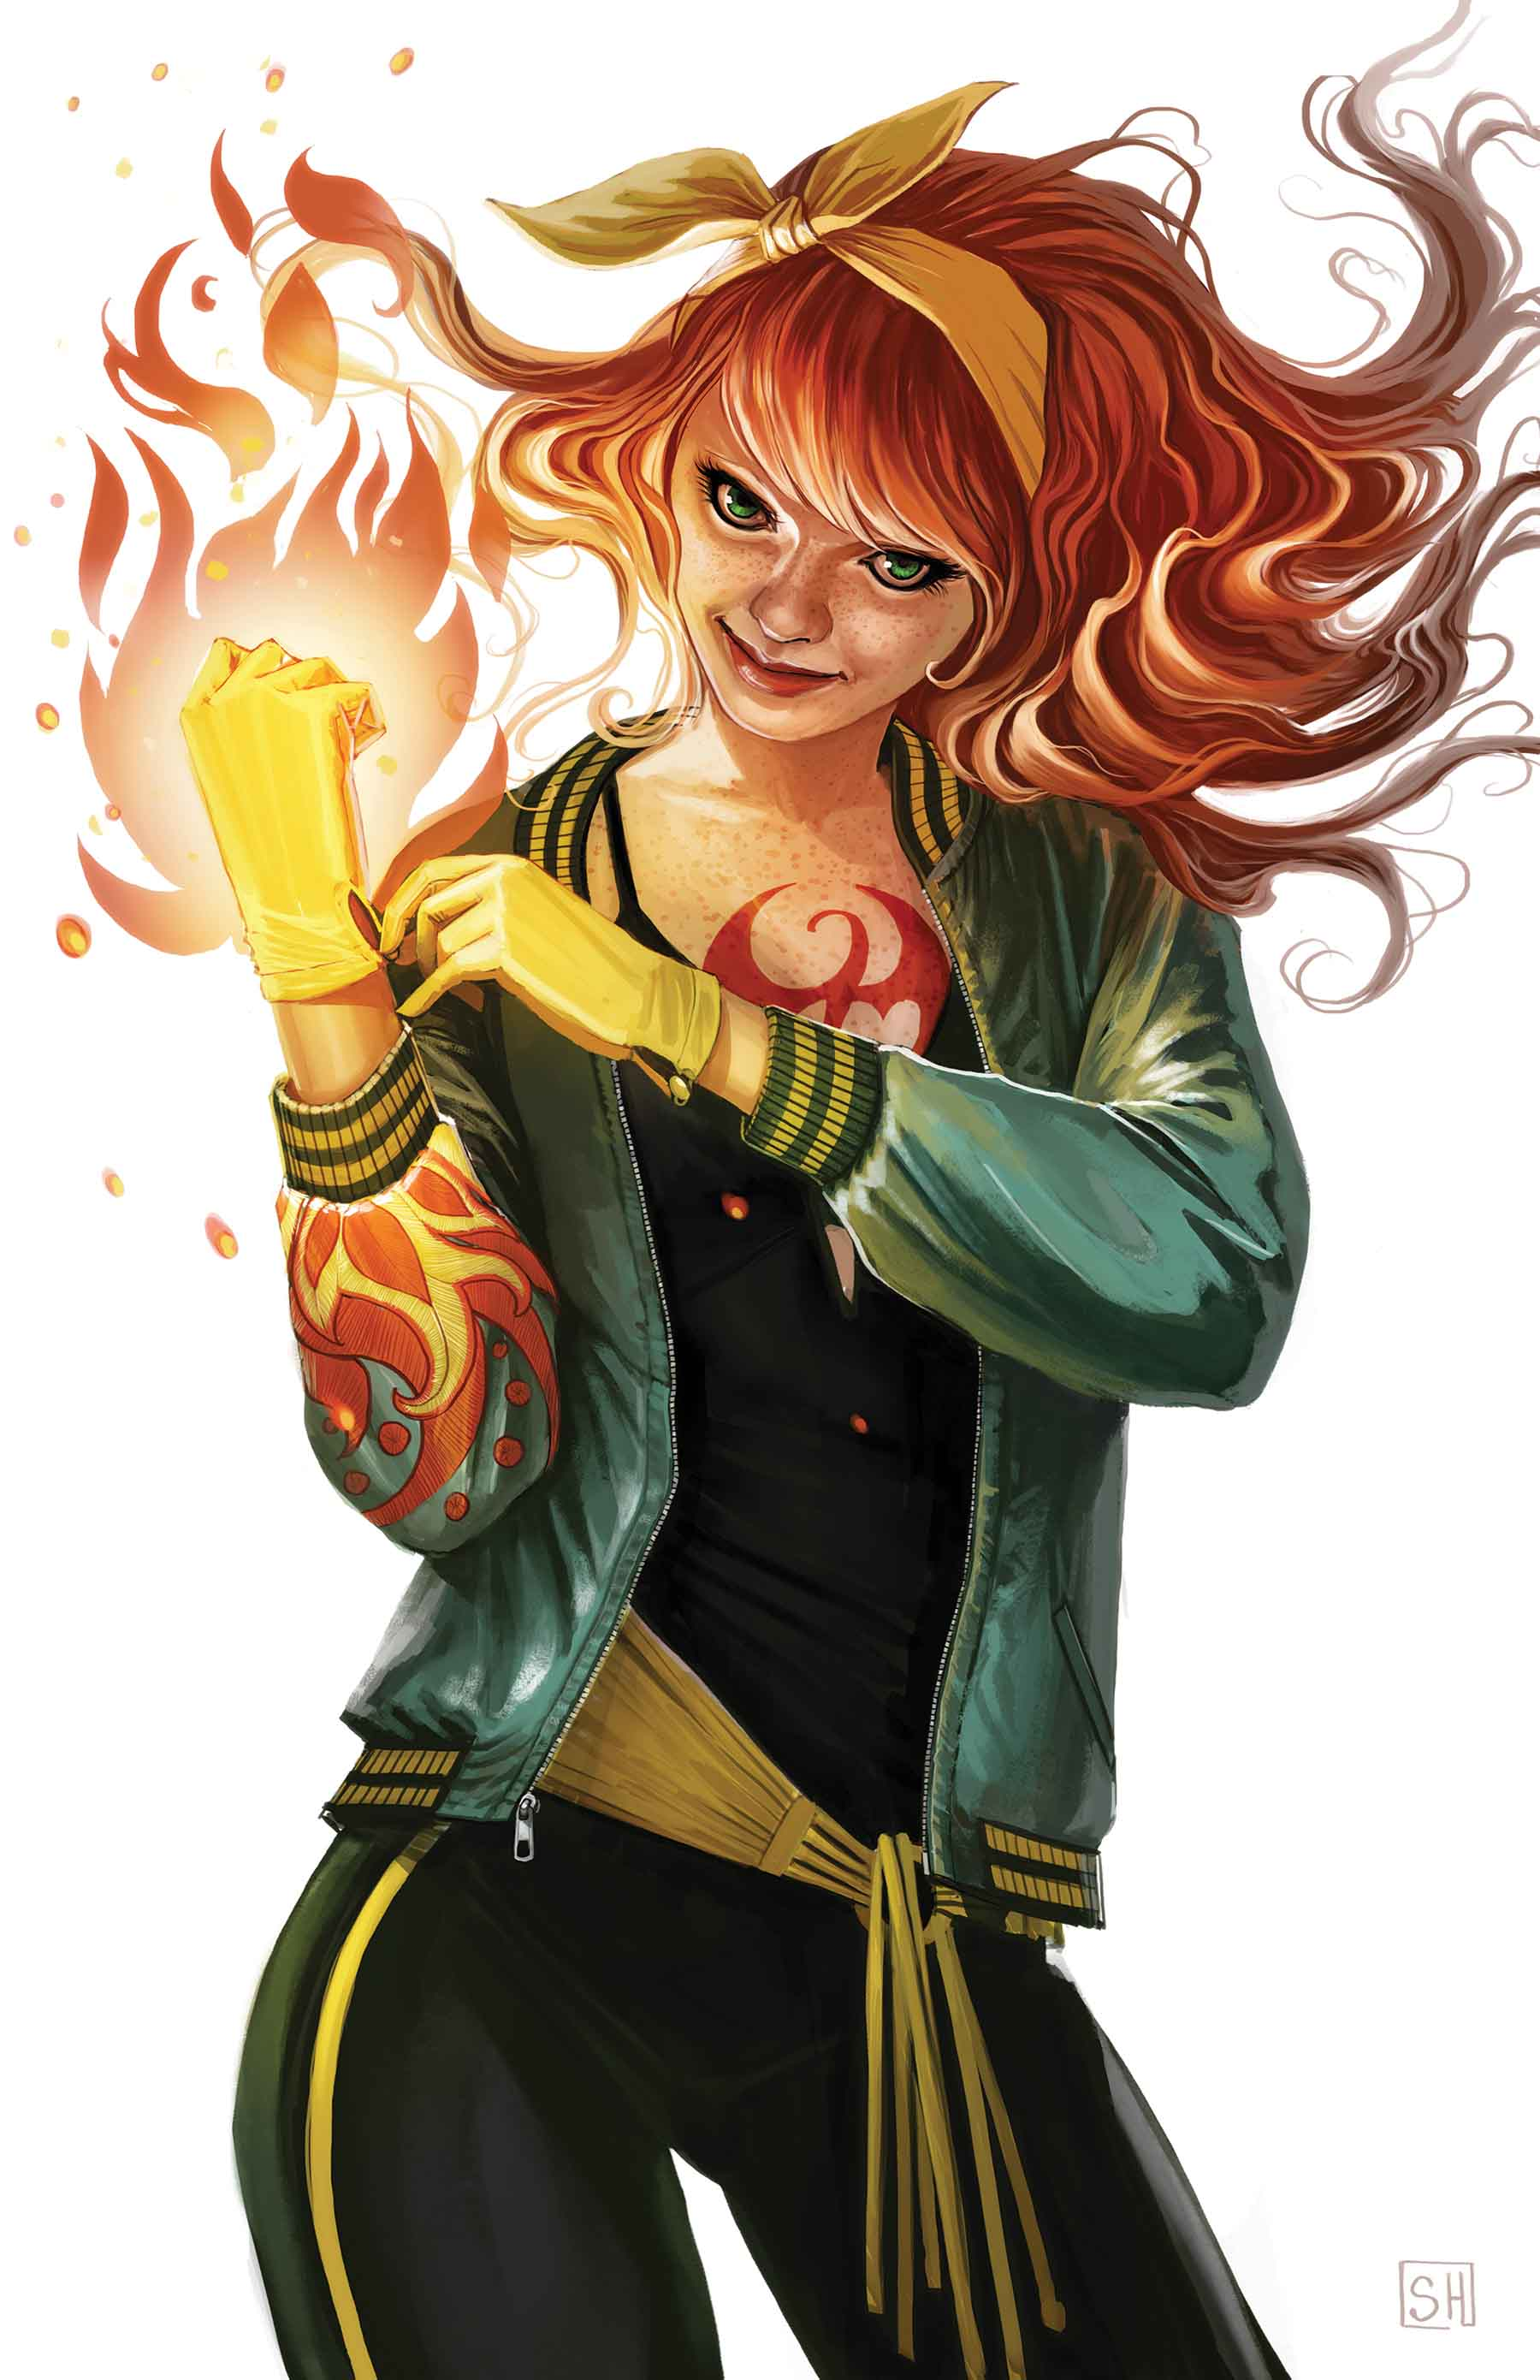 Mary Jane Variant Covers Put Spideys Friend In Every